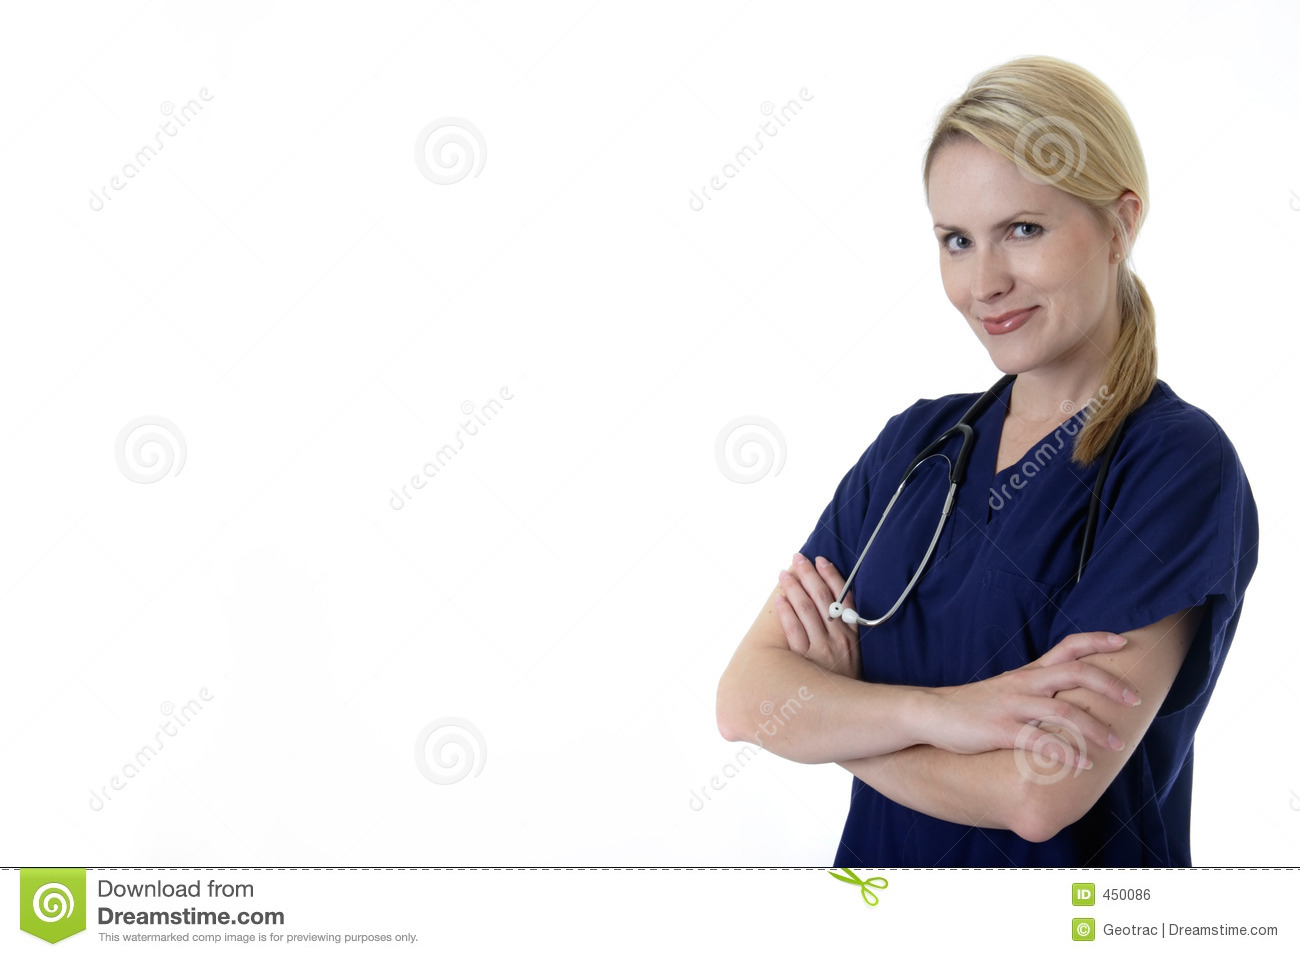 Download Pretty Nurse With Arms Crossed Smiling Stock Photo - Image of blond, nurse: 450086